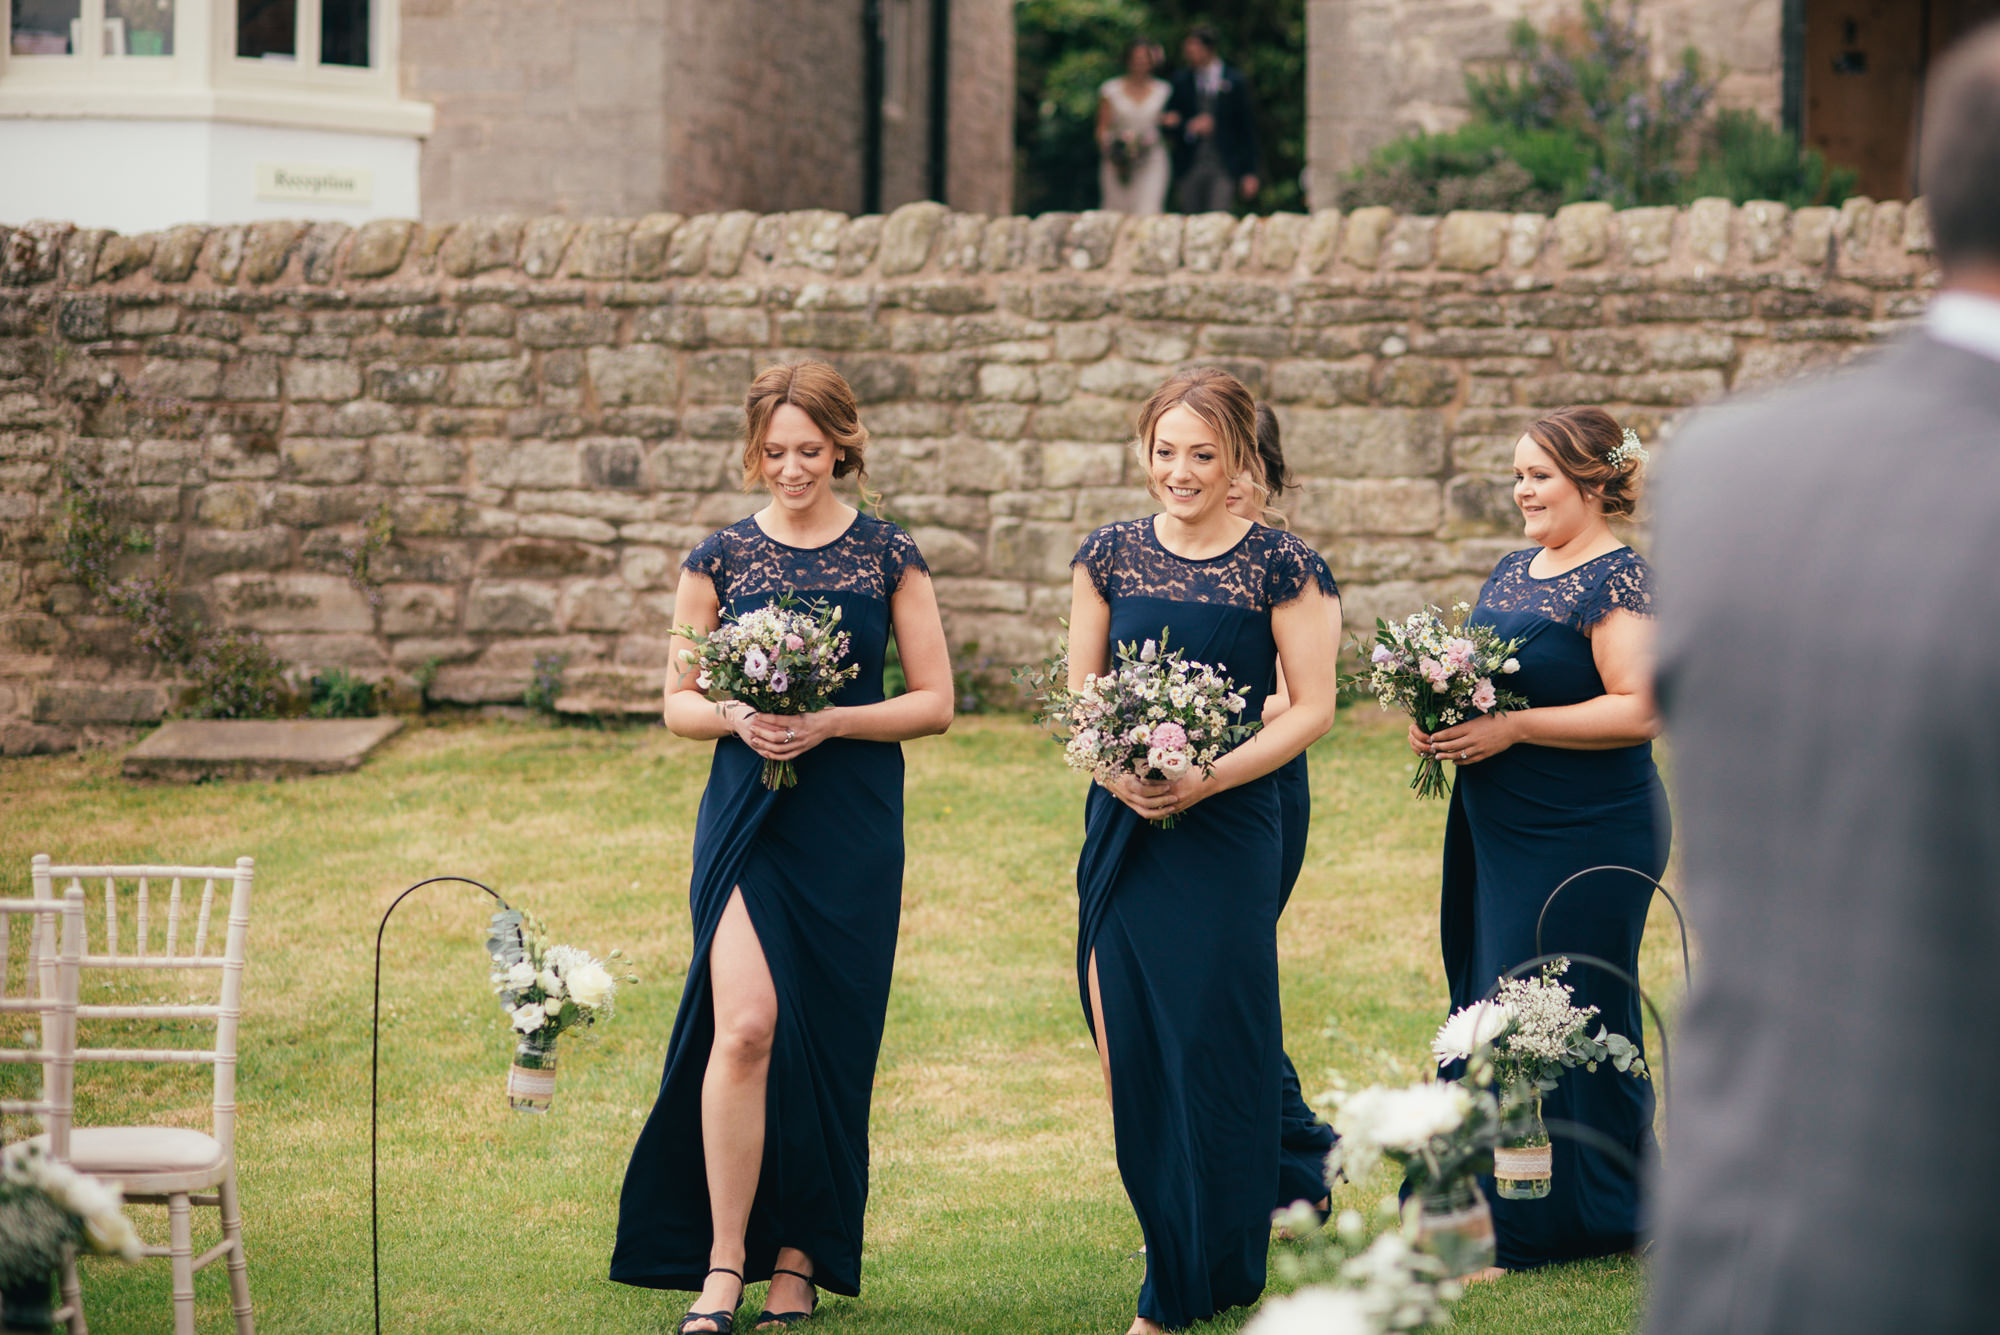 Lyde Court wedding Photographer28